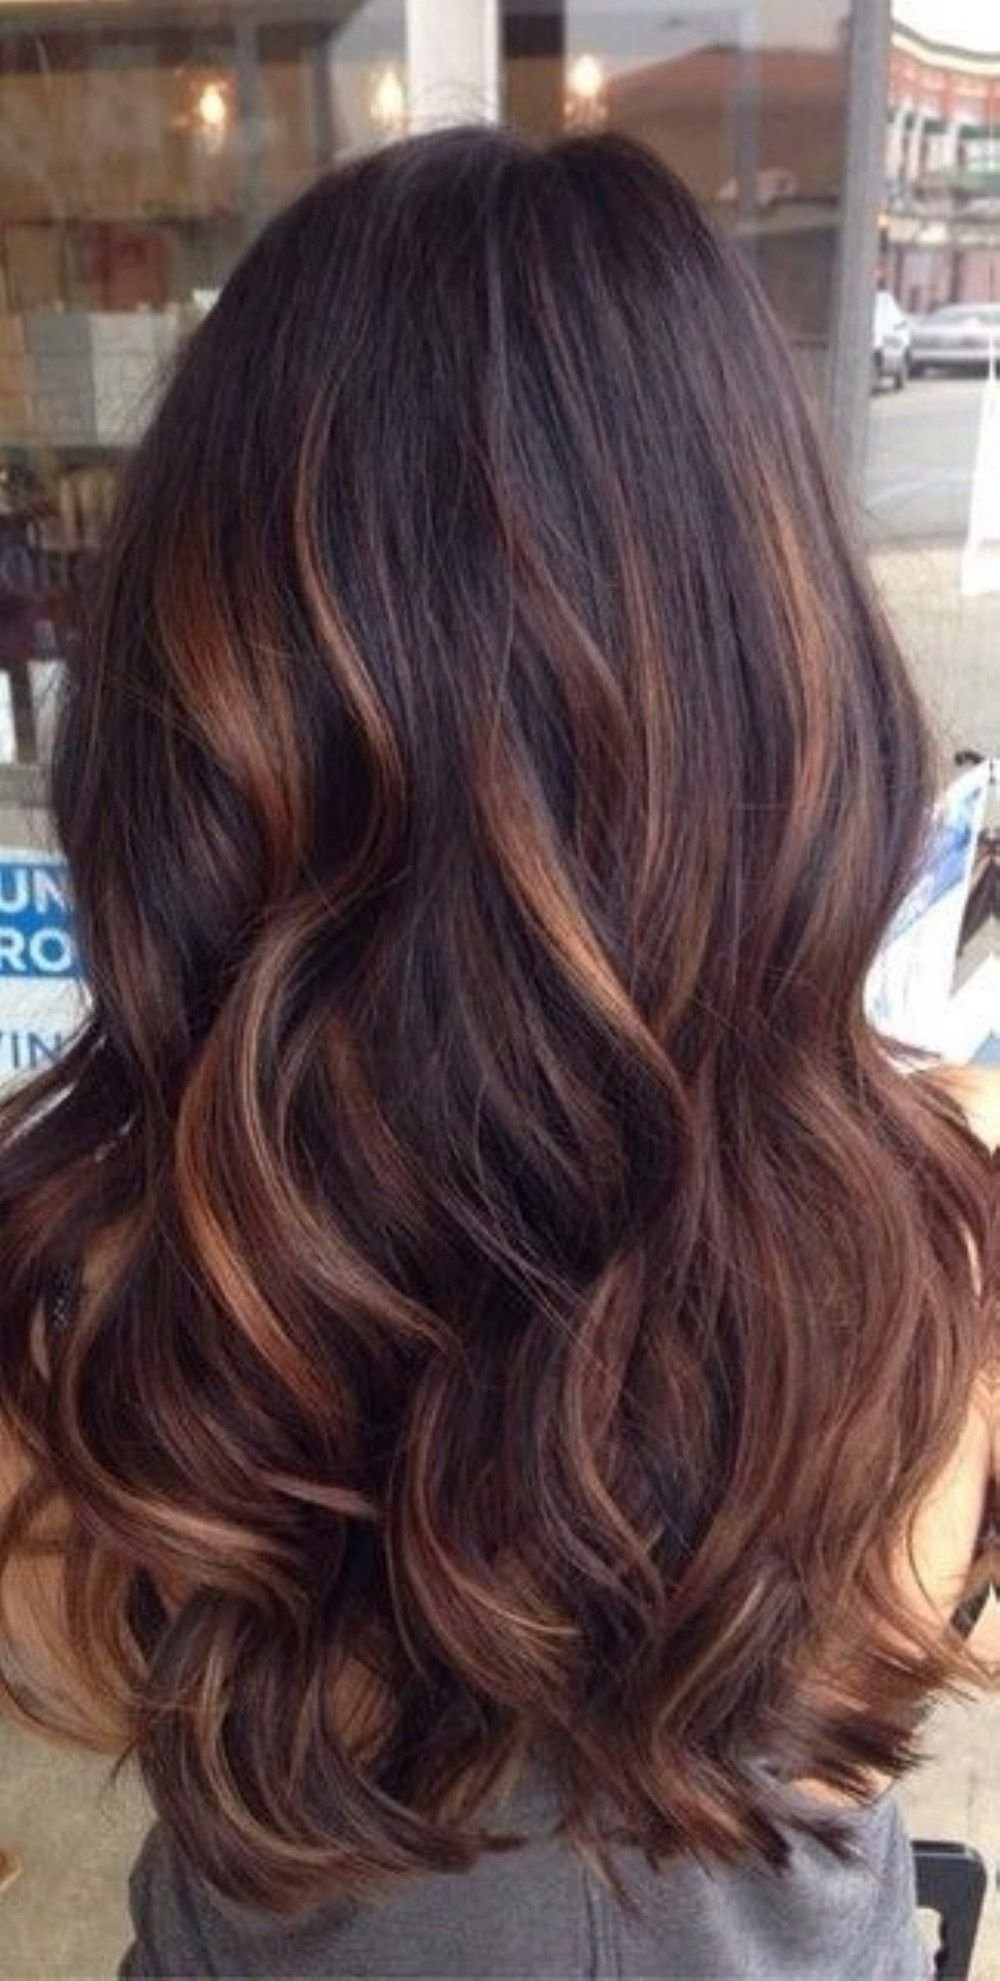 10 Awesome Hair Dye Ideas For Brunettes top brunette hair color ideas to try 2017 10 hair pinterest 2